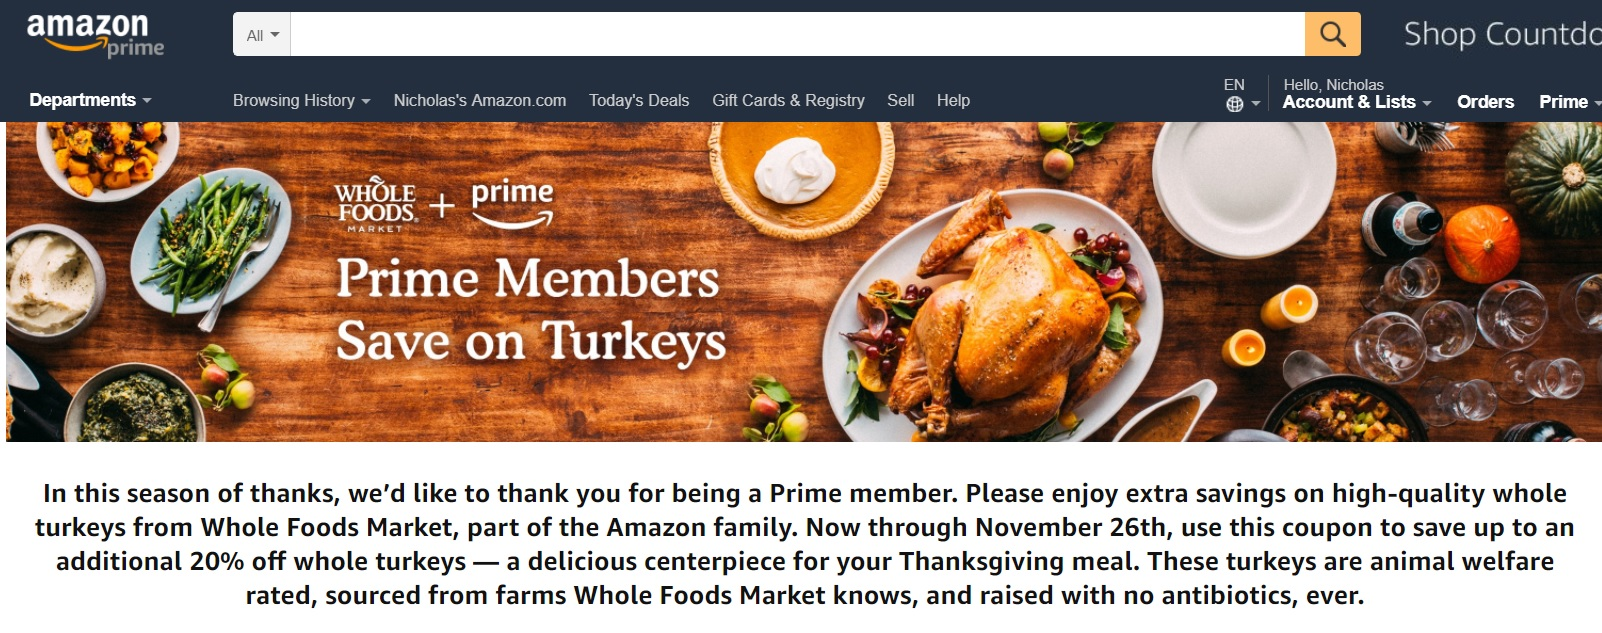 Amazon Turkey Expired Stack Chase Offer Prime Discount On Turkey At Whole Foods